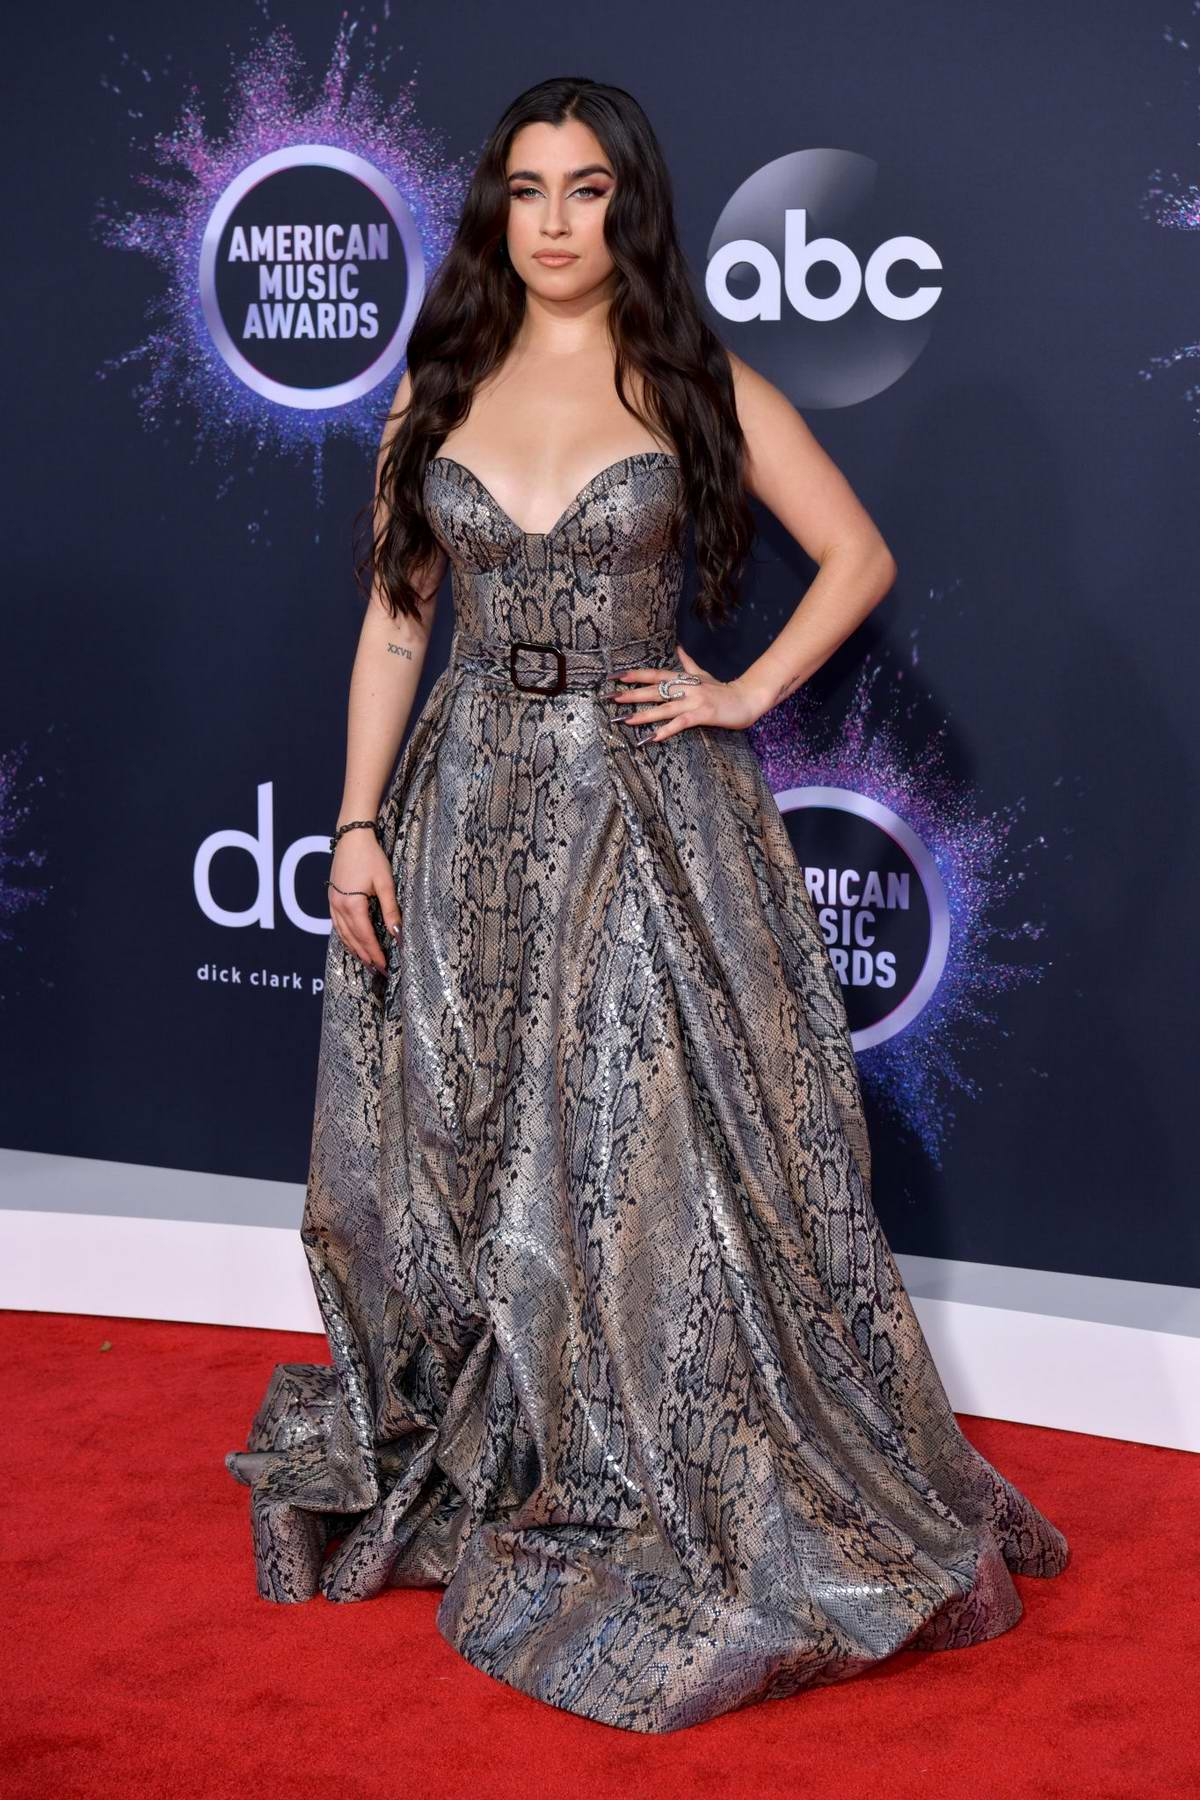 Lauren Jauregui attends the 2019 American Music Awards at Microsoft Theater in Los Angeles